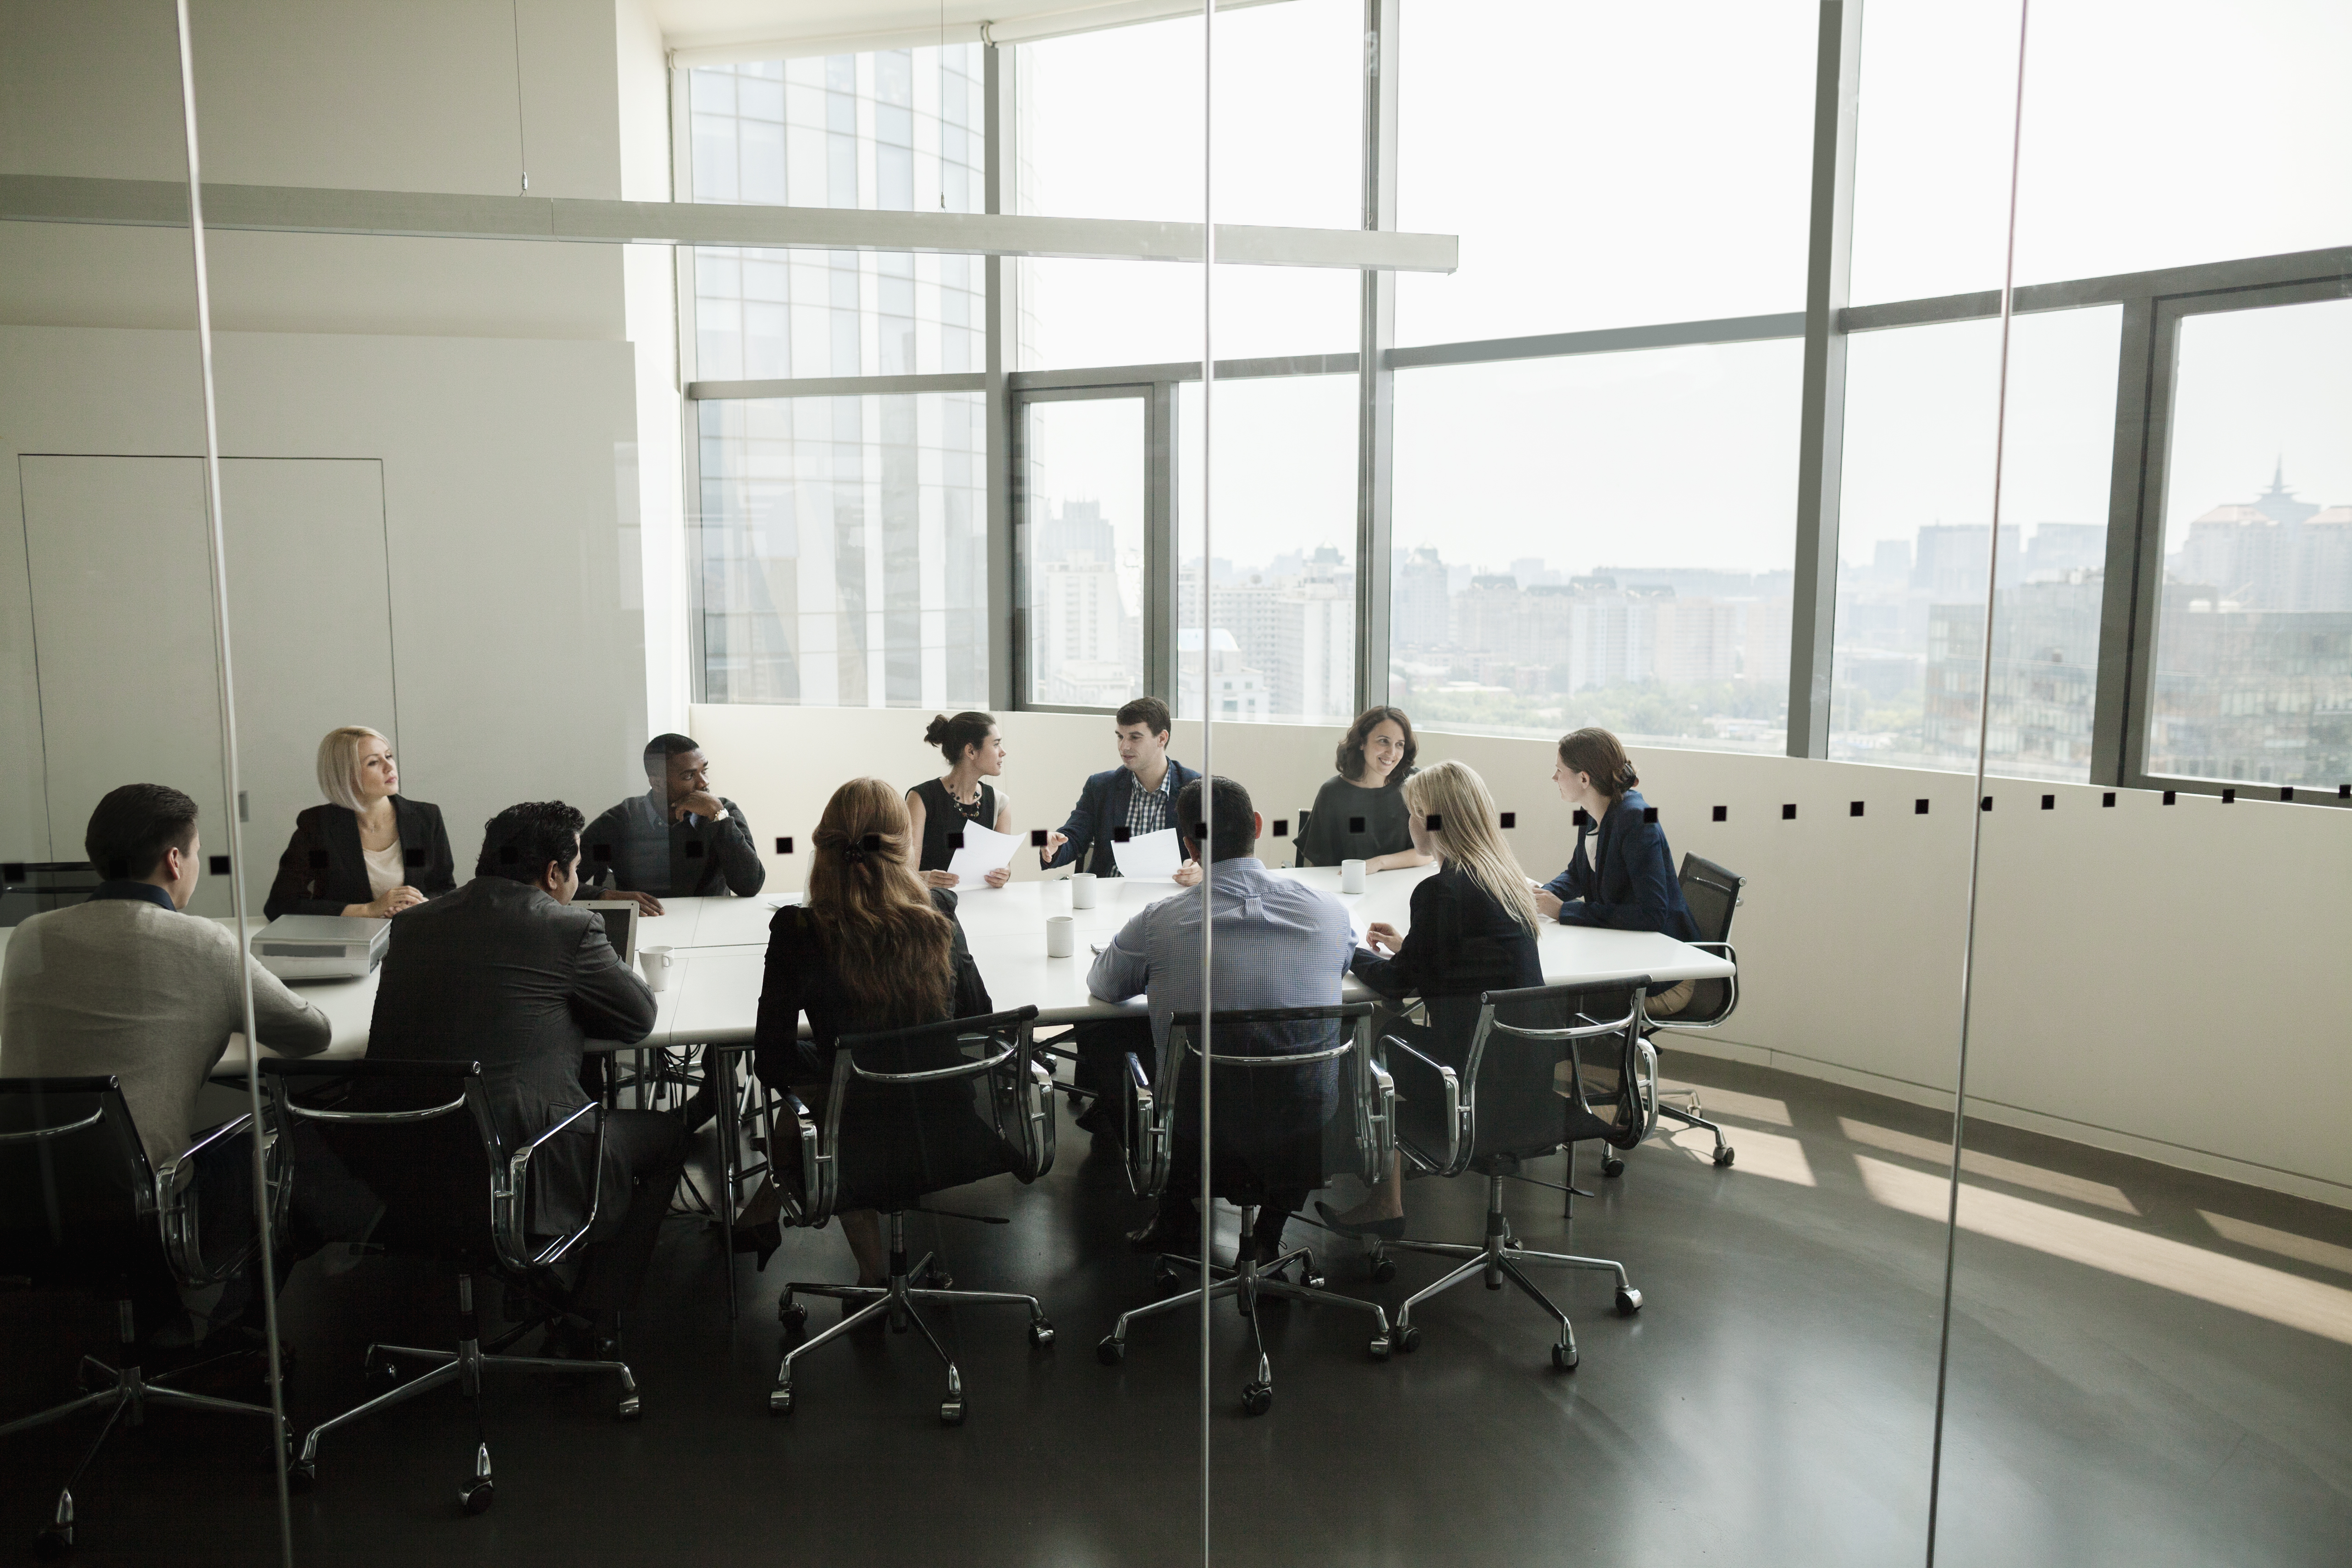 Group of business people having a business meeting